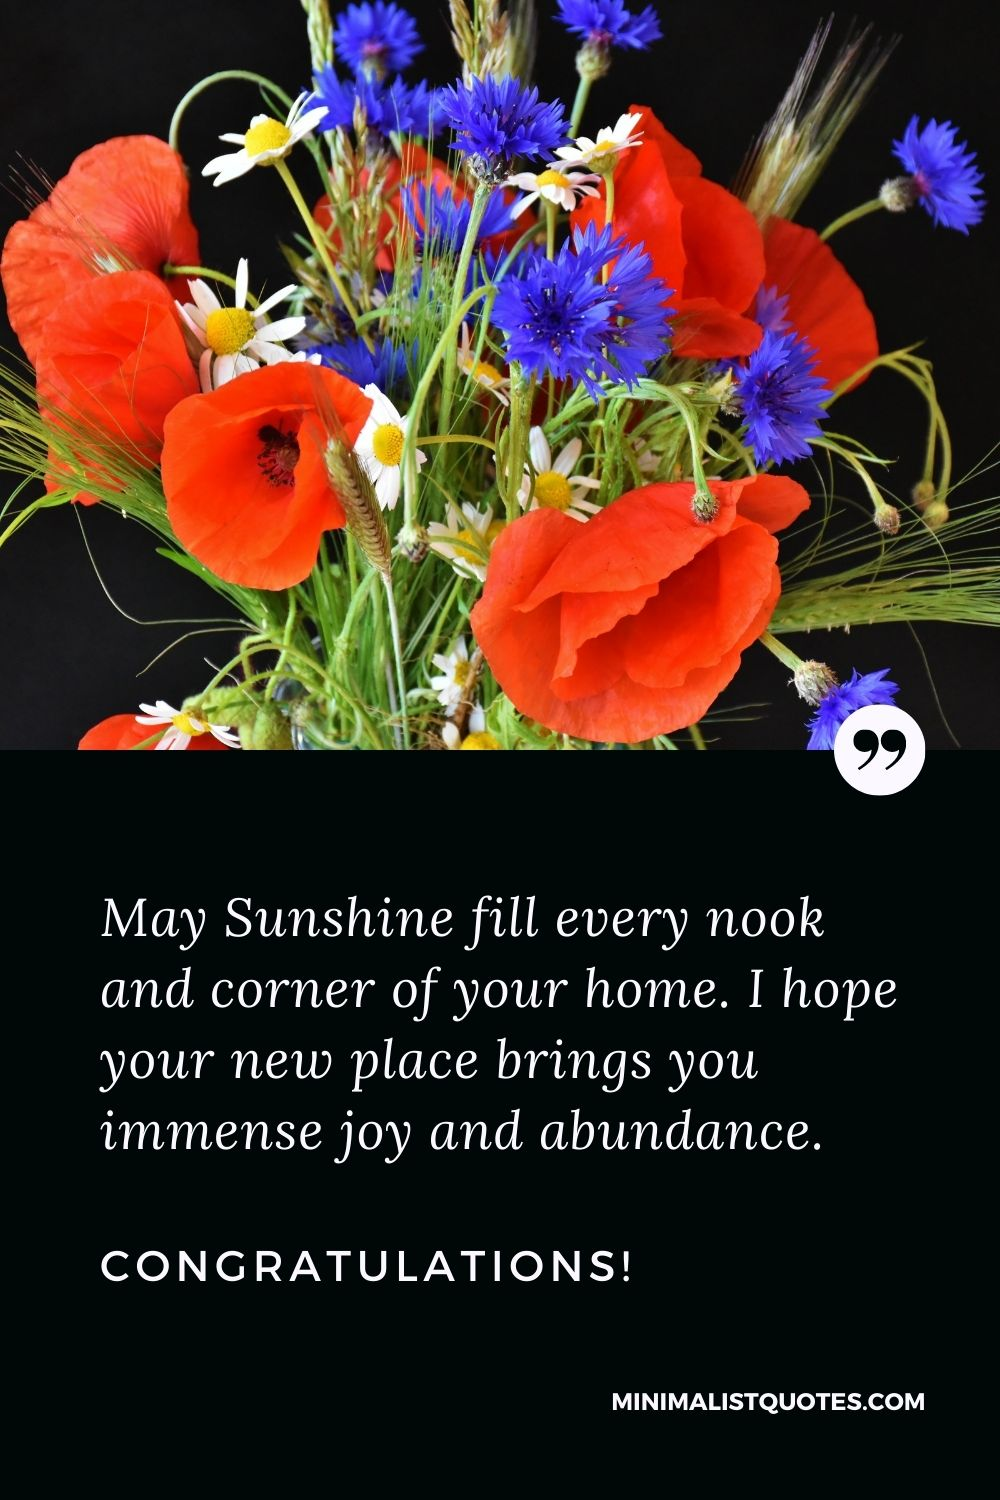 New Home Wish, Quote & Message With Image: May Sunshine fill every nook and corner of your home. I hope your new place brings you immense joy and abundance. Congratulations!